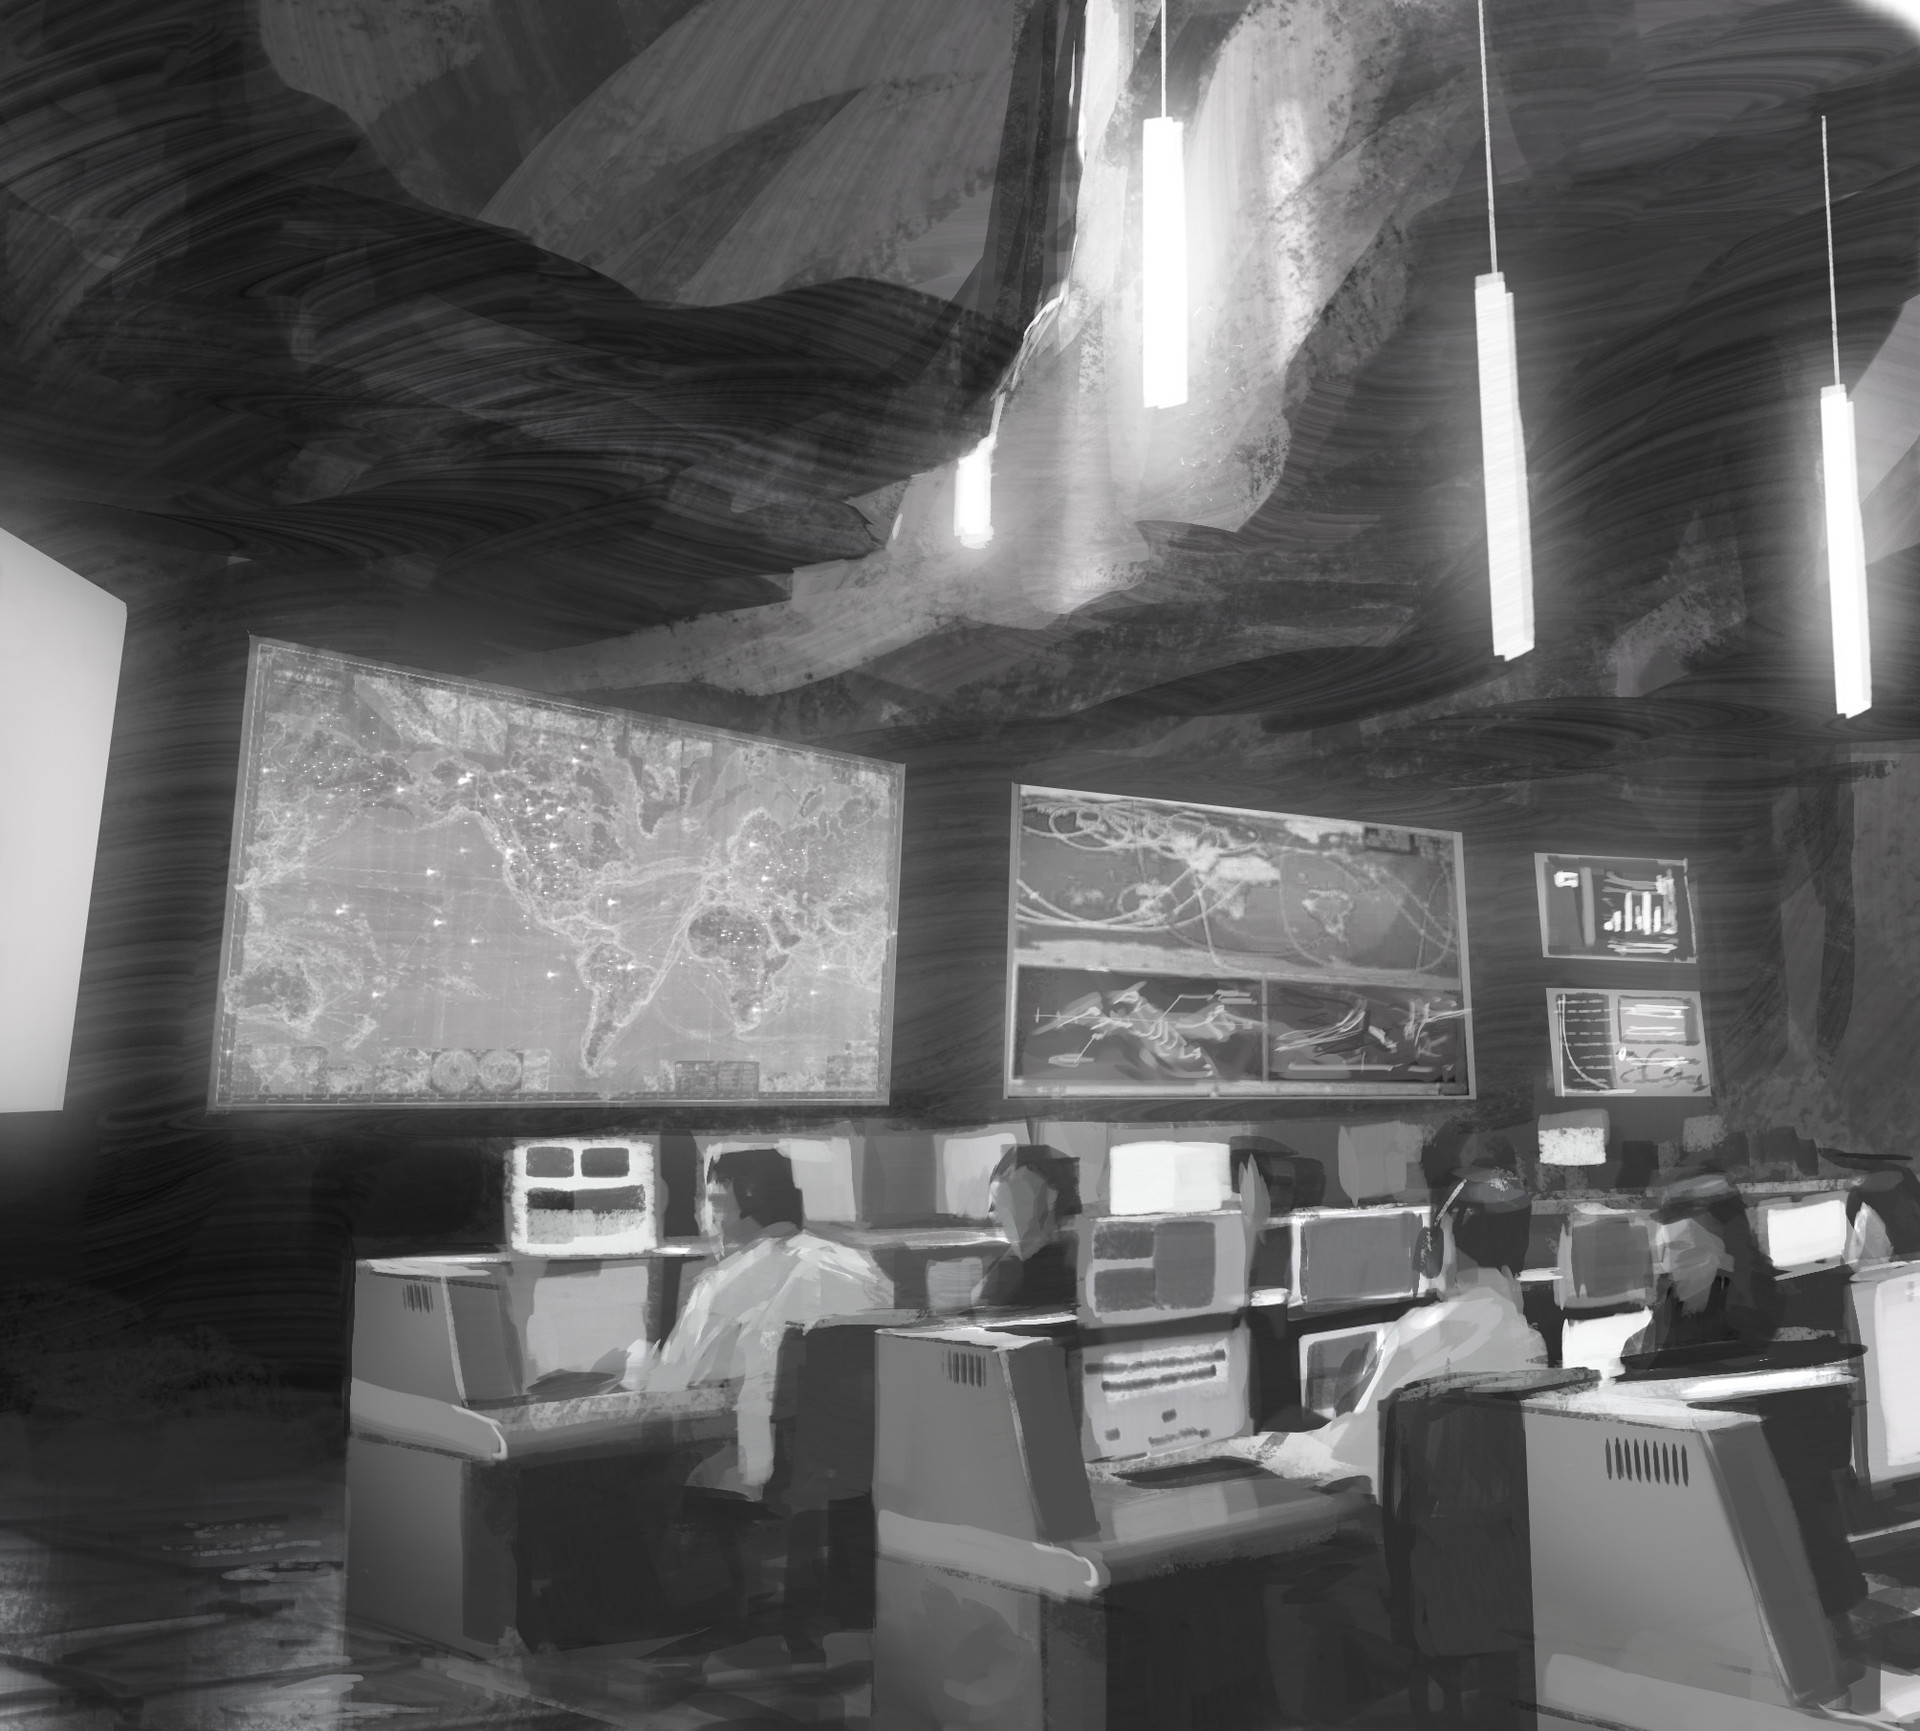 Another version of a traditional Mission Control.